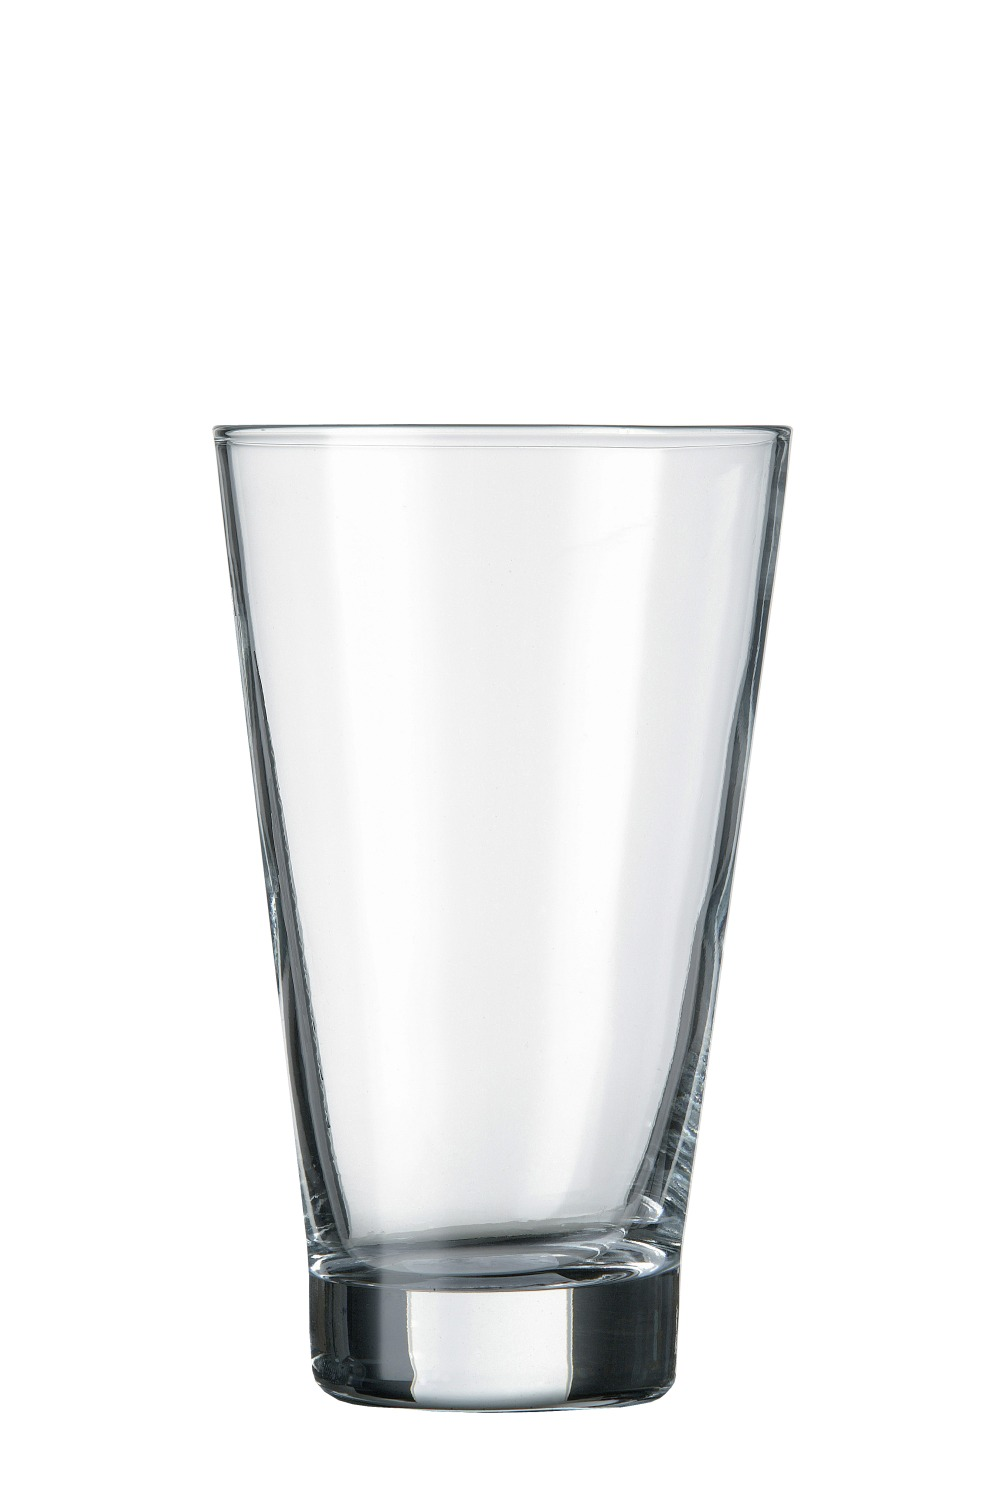 royal_leerdam_longdrinkglas_york_31cl.jpg